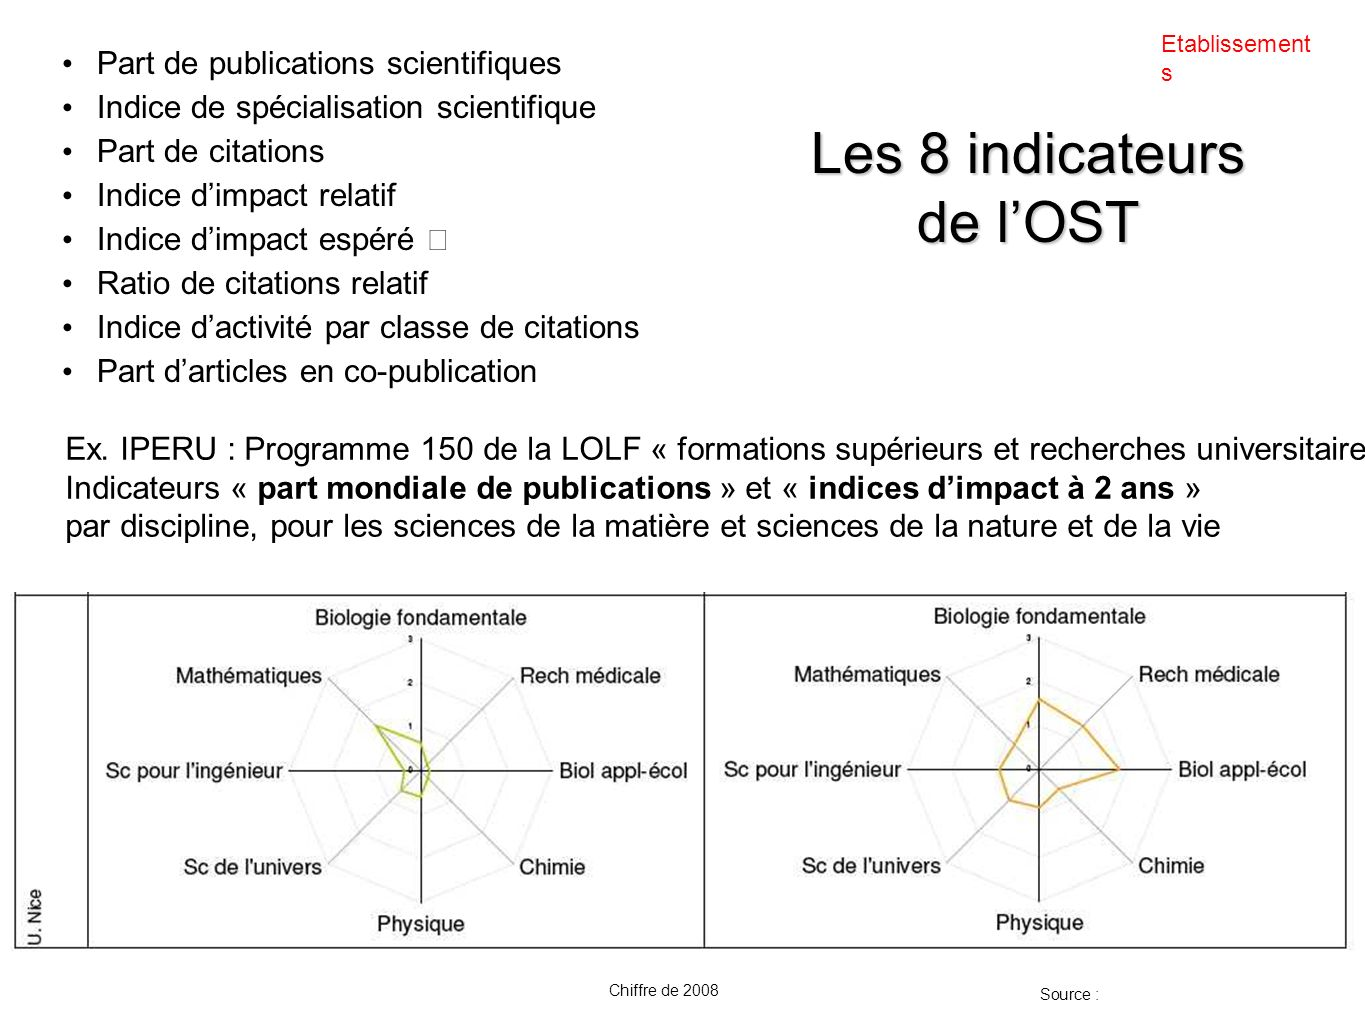 Les 8 indicateurs de l'OST